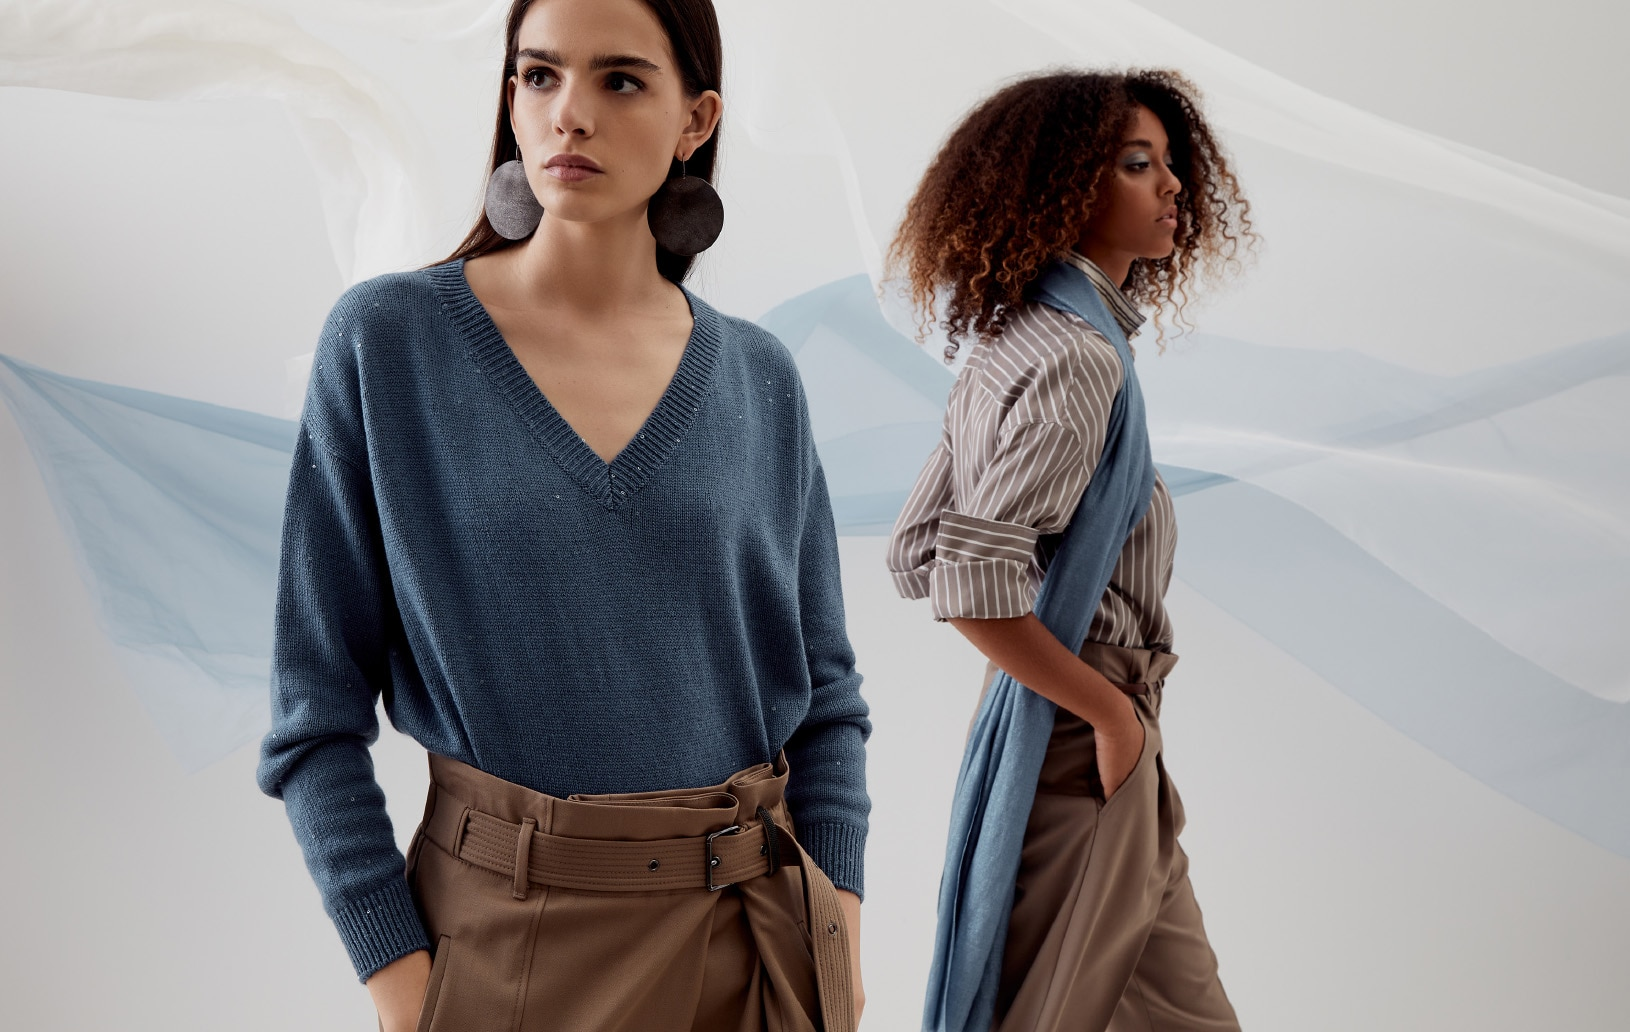 Women's Fall-Winter 2020 Collection - Duo in Pastels